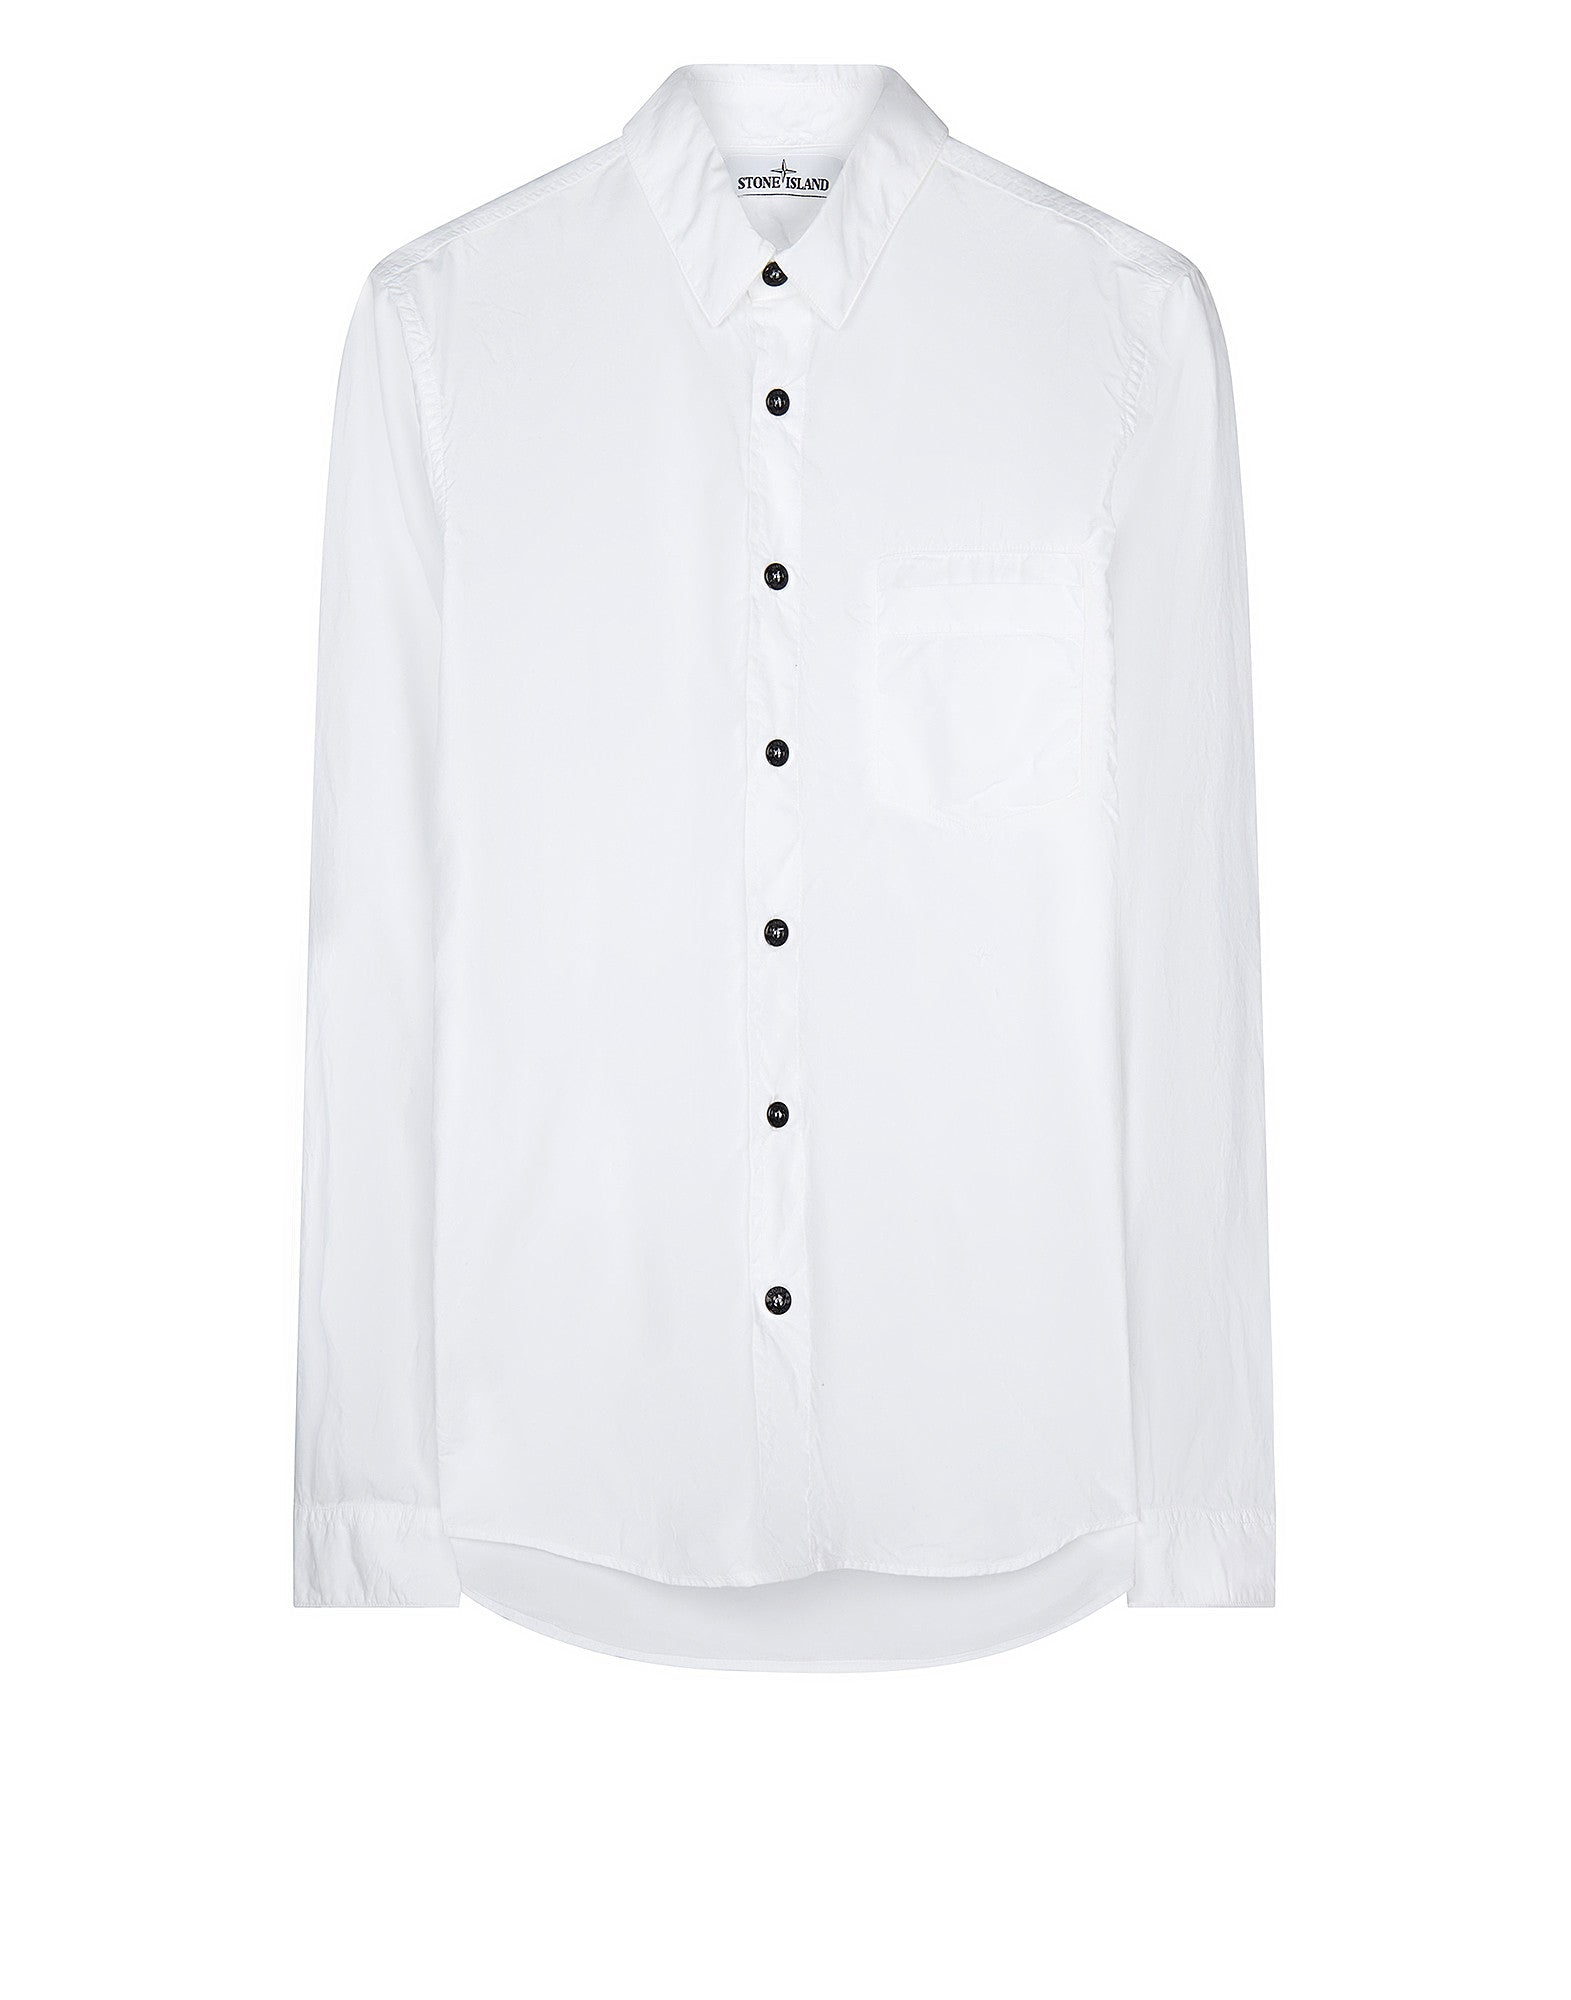 10910 Shirt in White